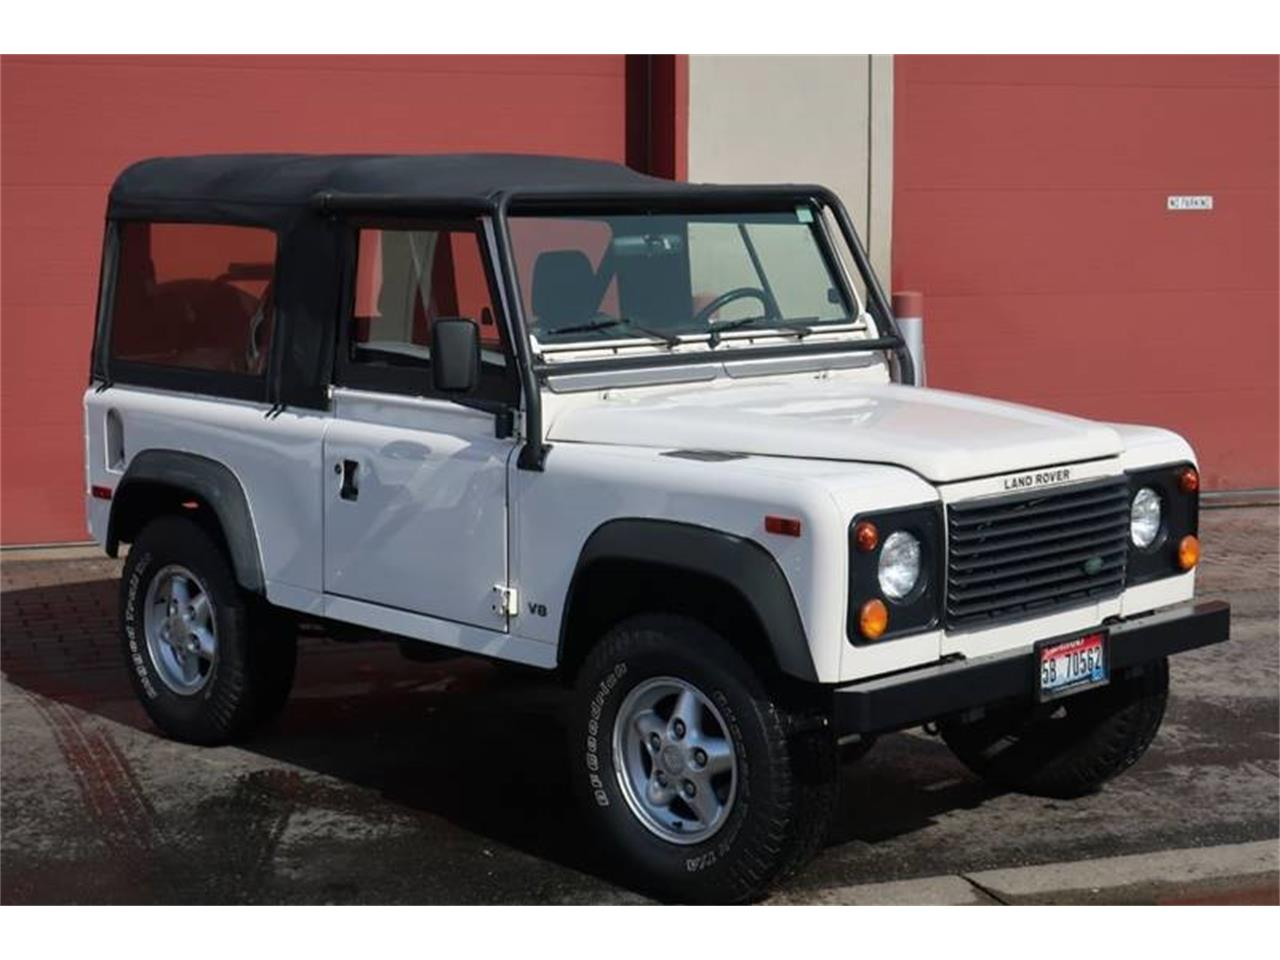 1995 Land Rover Defender for sale in Hailey, ID – photo 4